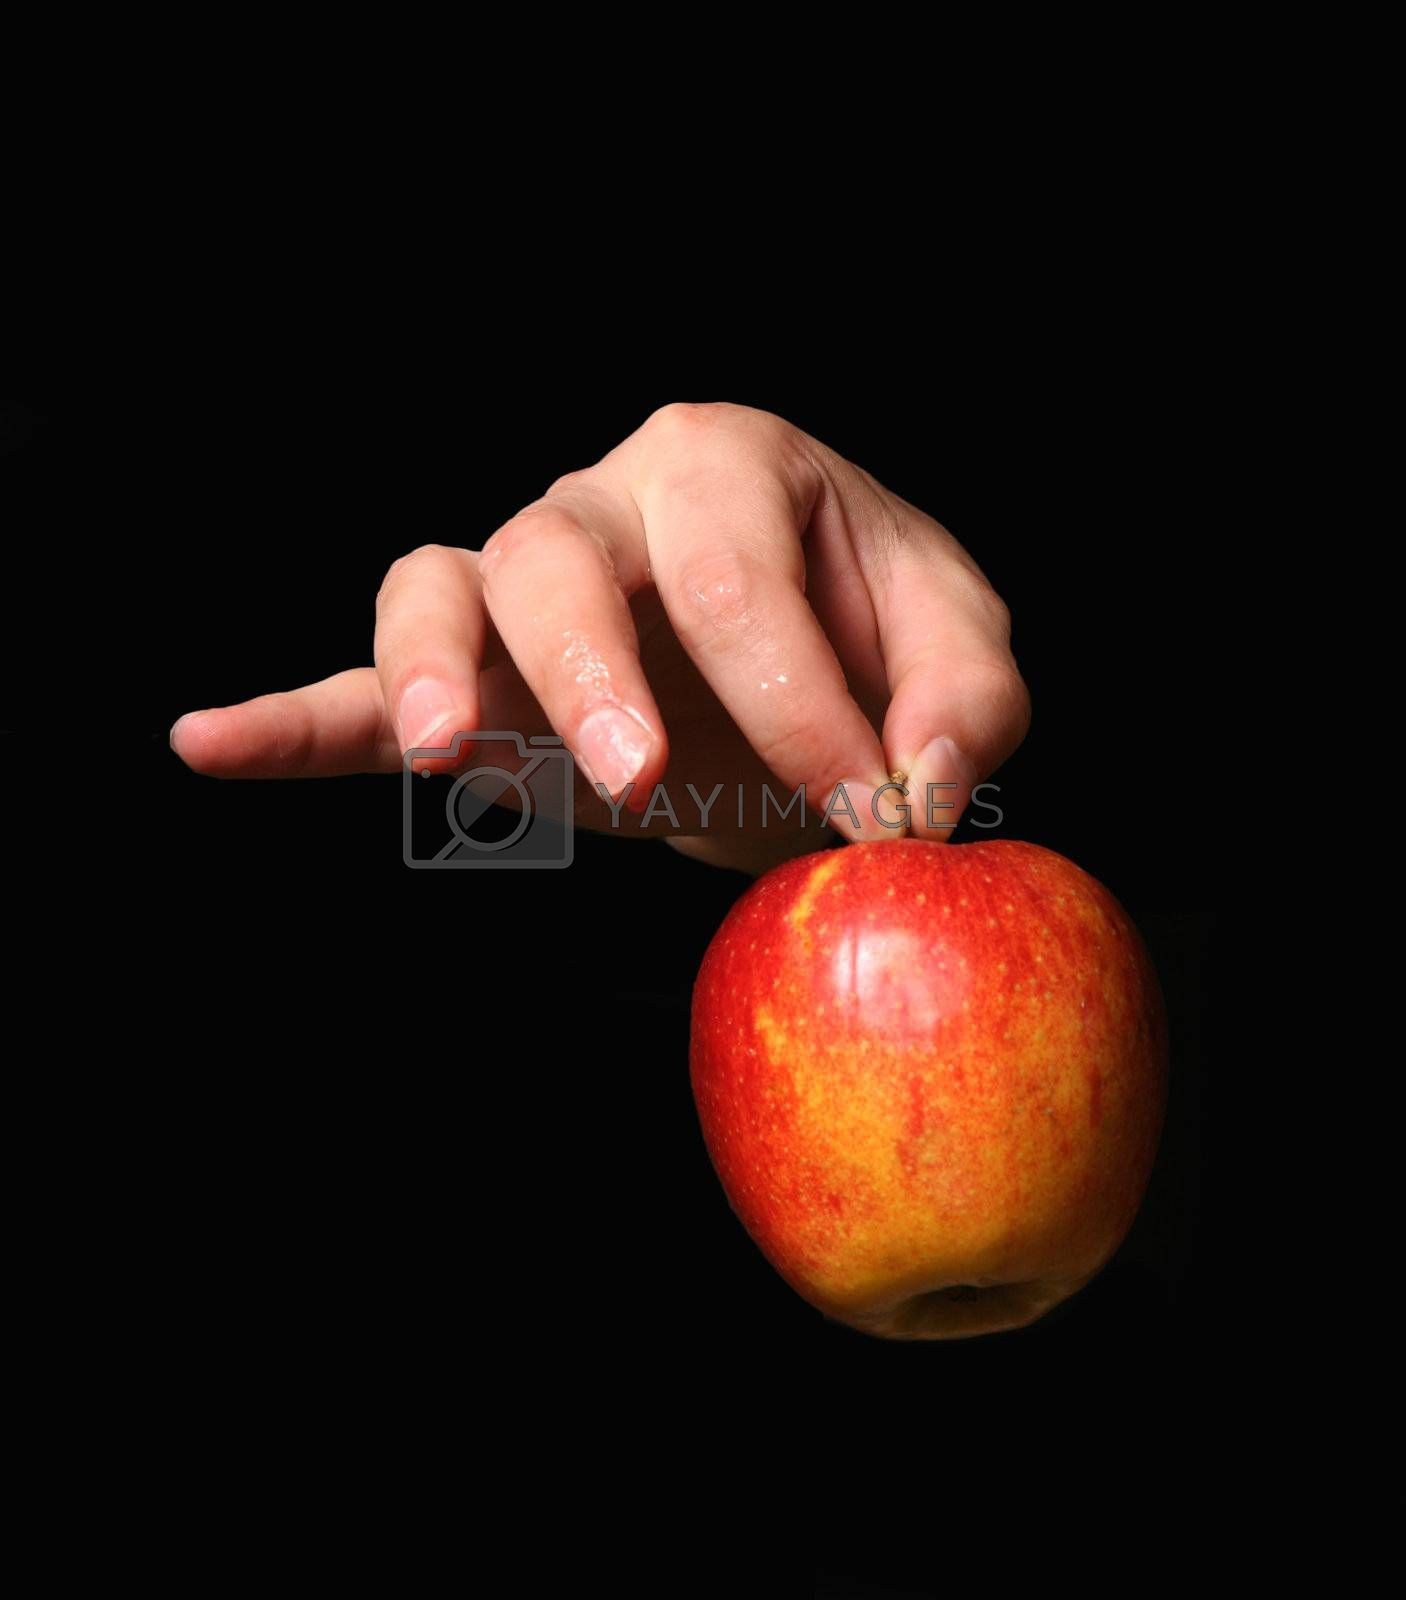 Man's hand with a red apple on a black background